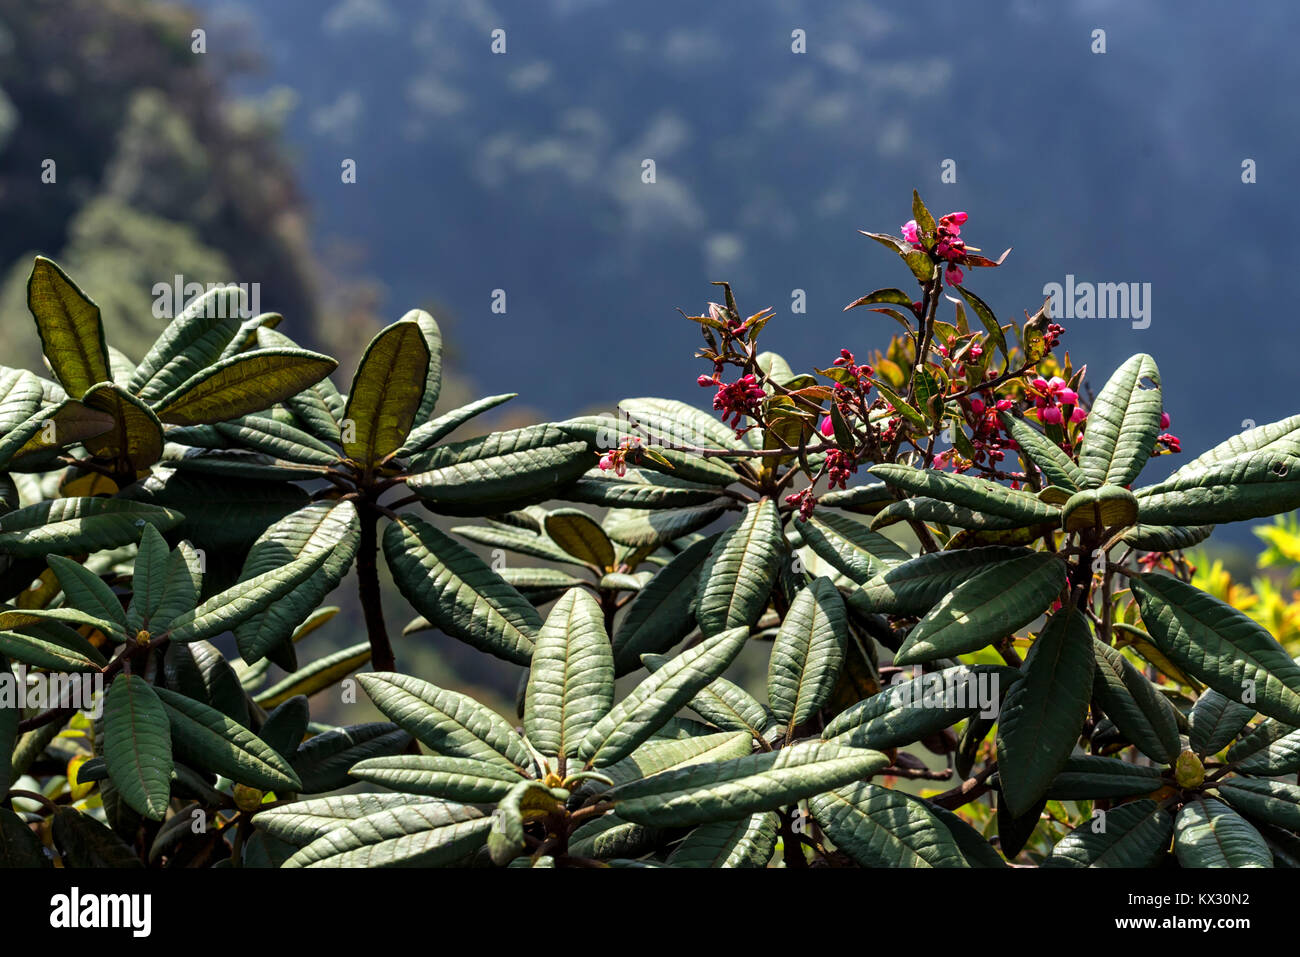 Blooming rhododendron arboreum in Horton Plains - Stock Image